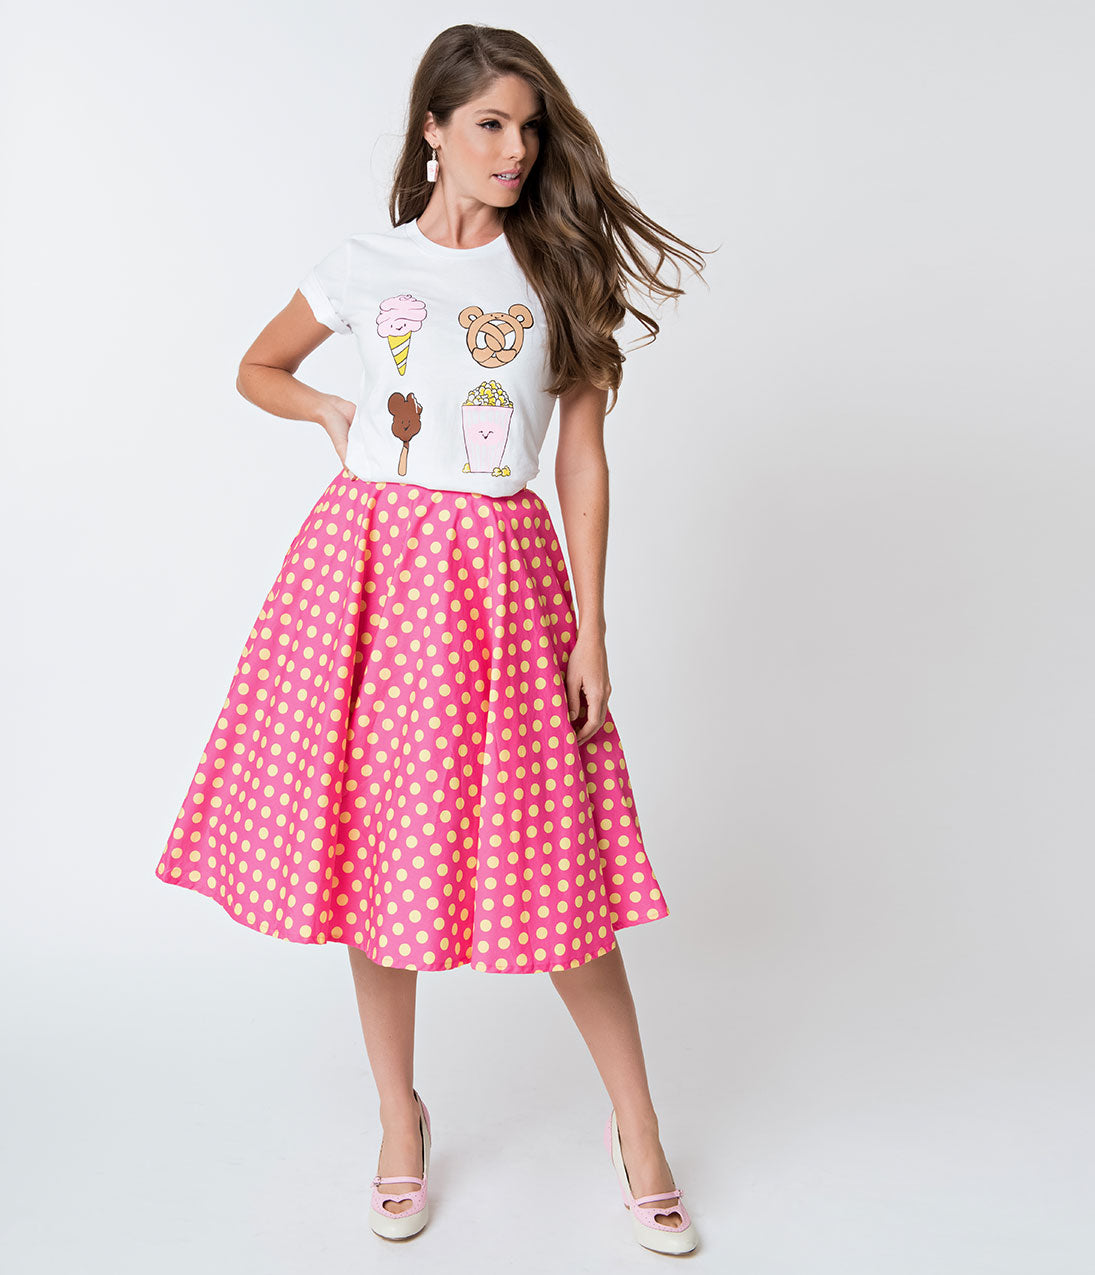 1950s Costumes- Poodle Skirts, Grease, Monroe, Pin Up, I Love Lucy Vintage Style Hot Pink  Yellow Polka Dot Cotton Circle Skirt $48.00 AT vintagedancer.com